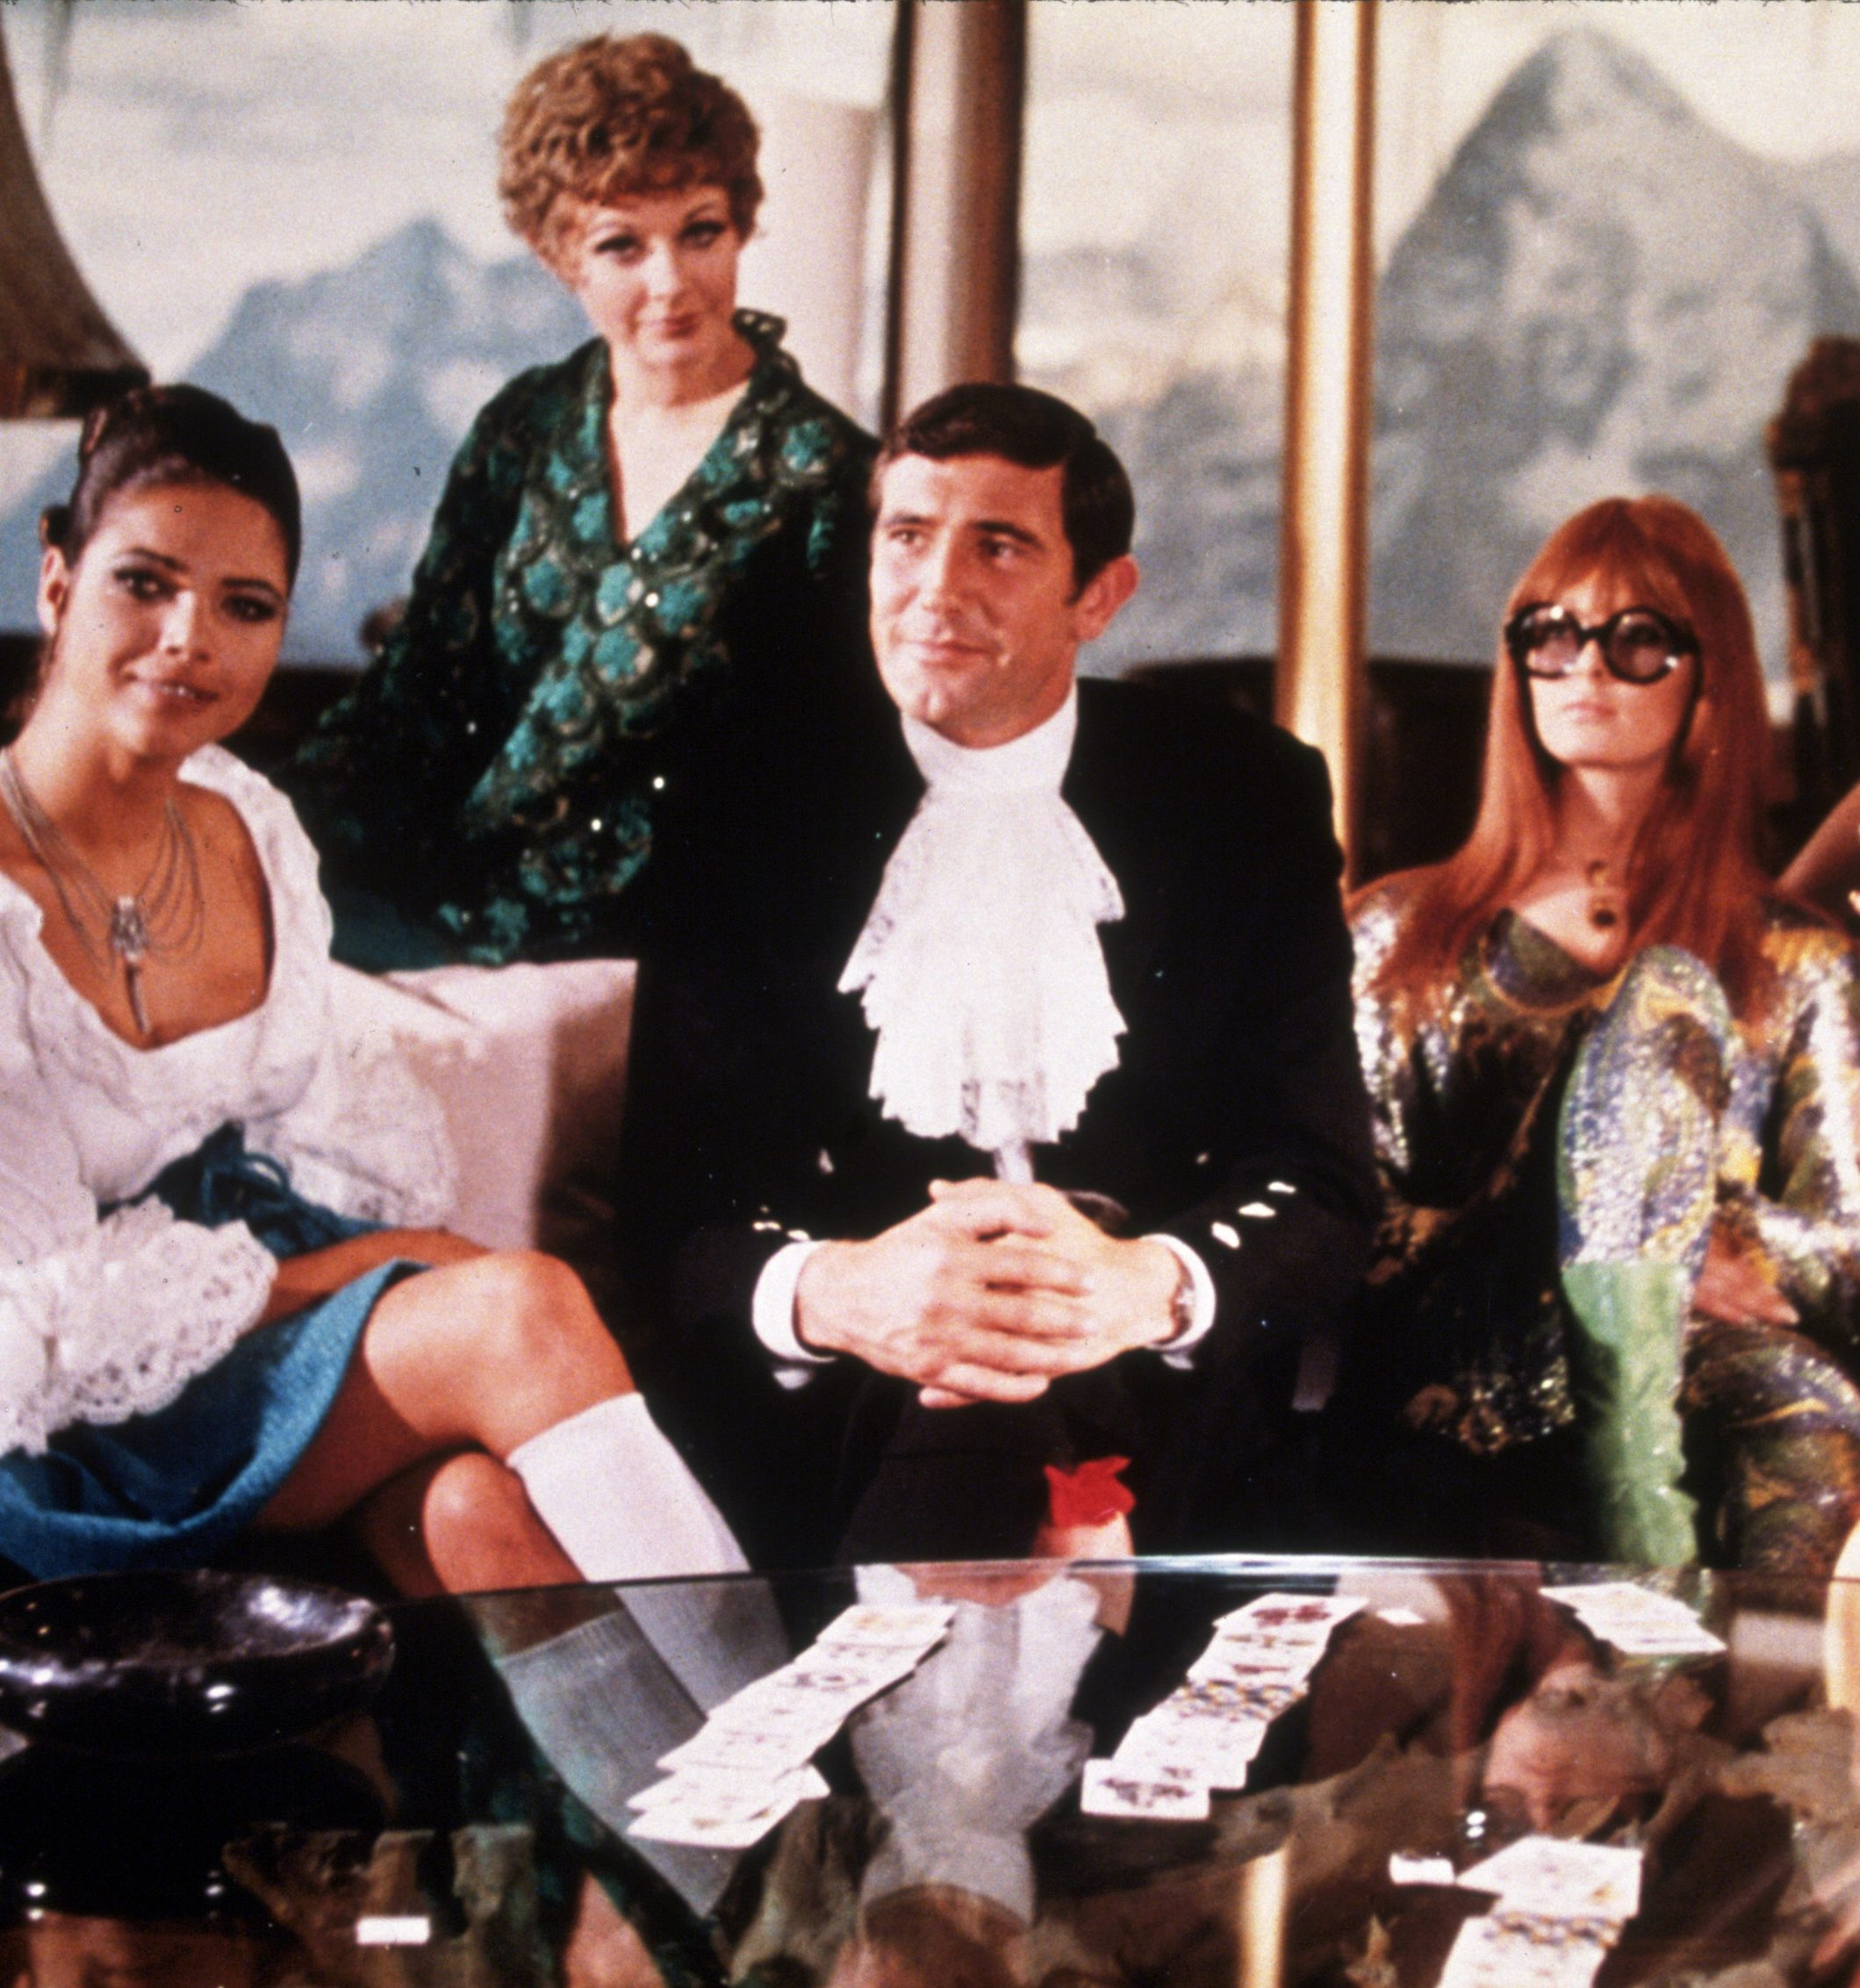 In 1969 on the Piz Gloria In her Majestys secret service look e1582713519335 11 Of The Best James Bond Movies (And 10 Of The Worst)